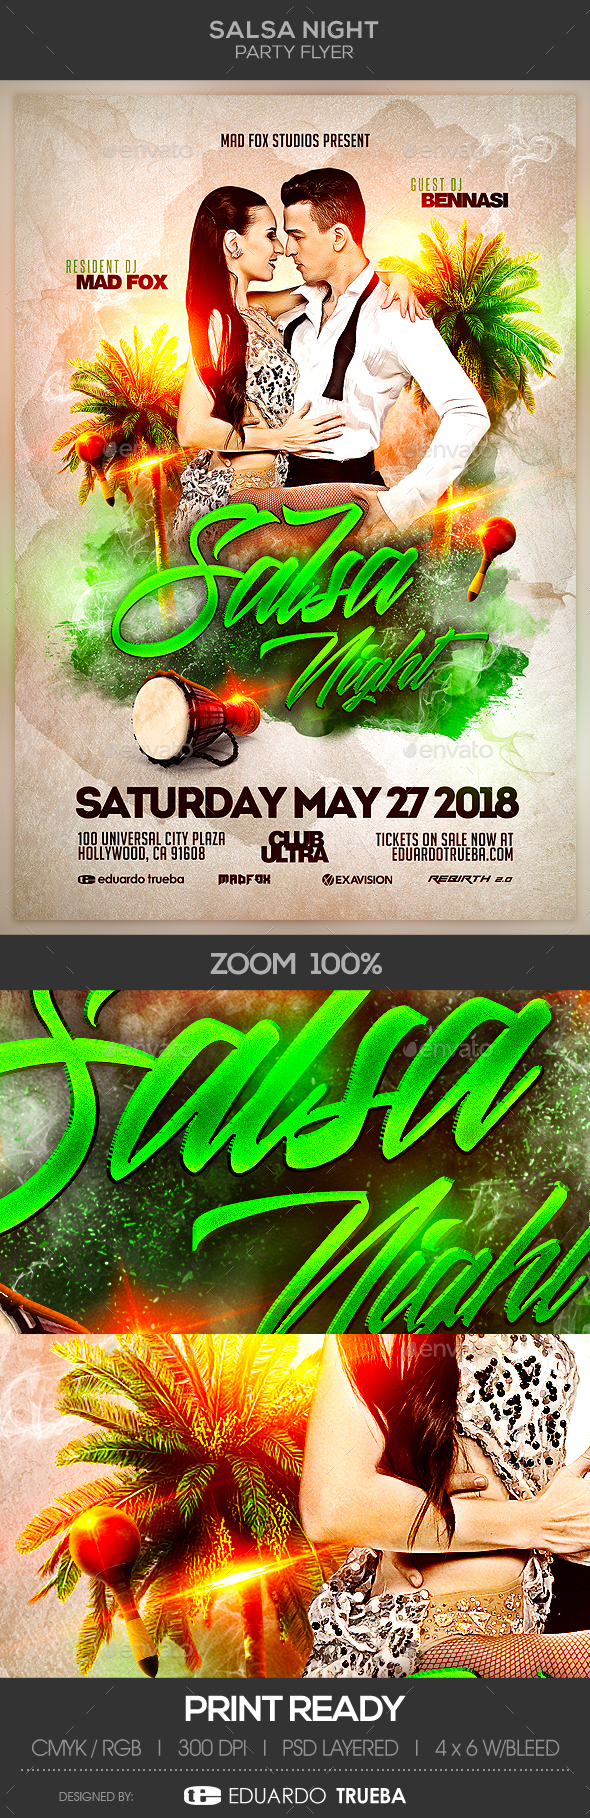 Salsa Night Party Flyer - Clubs & Parties Events